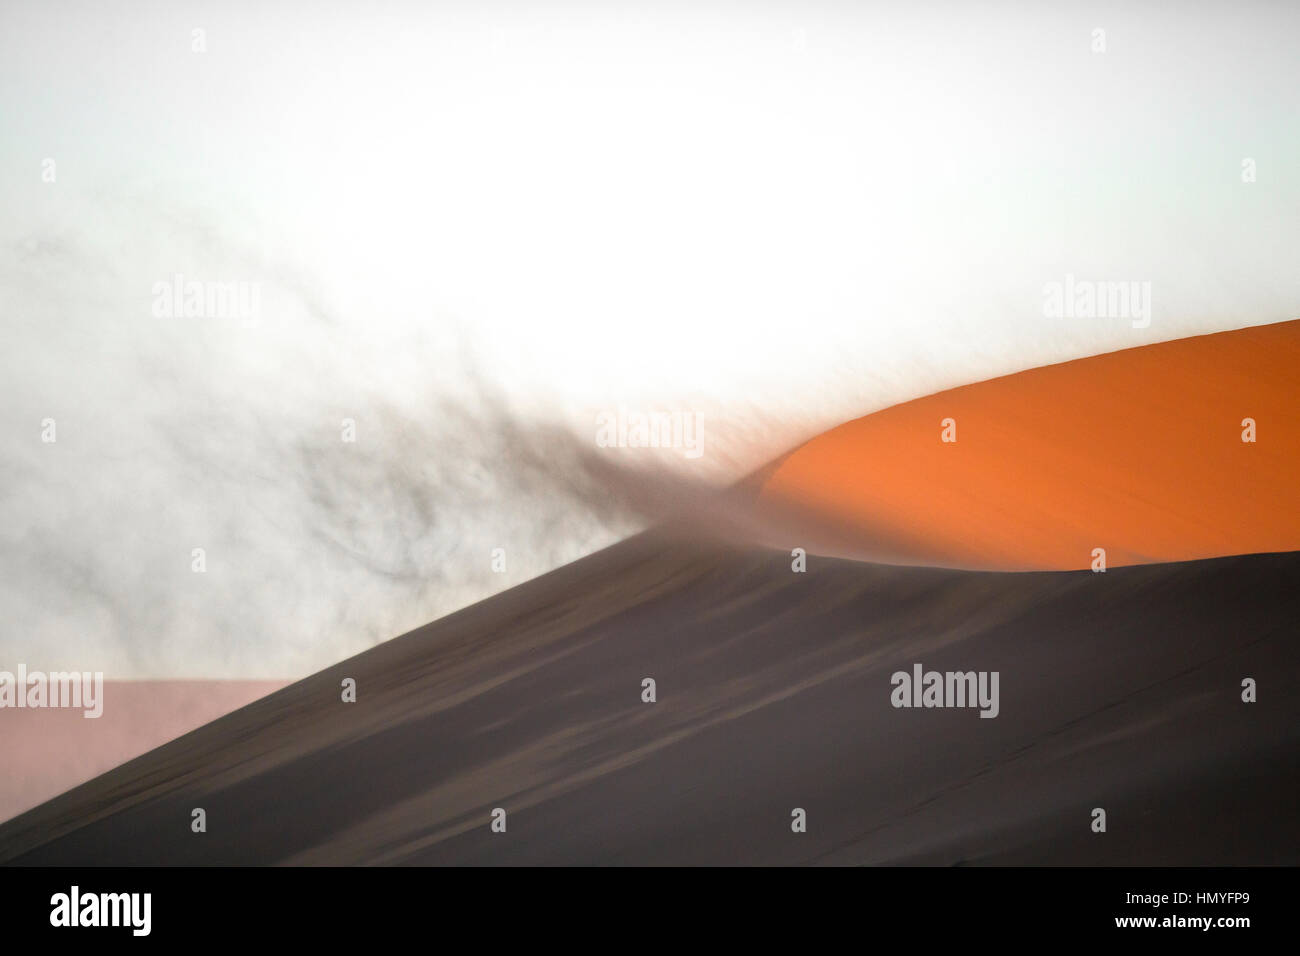 Sand blowing off a sand dune - Stock Image